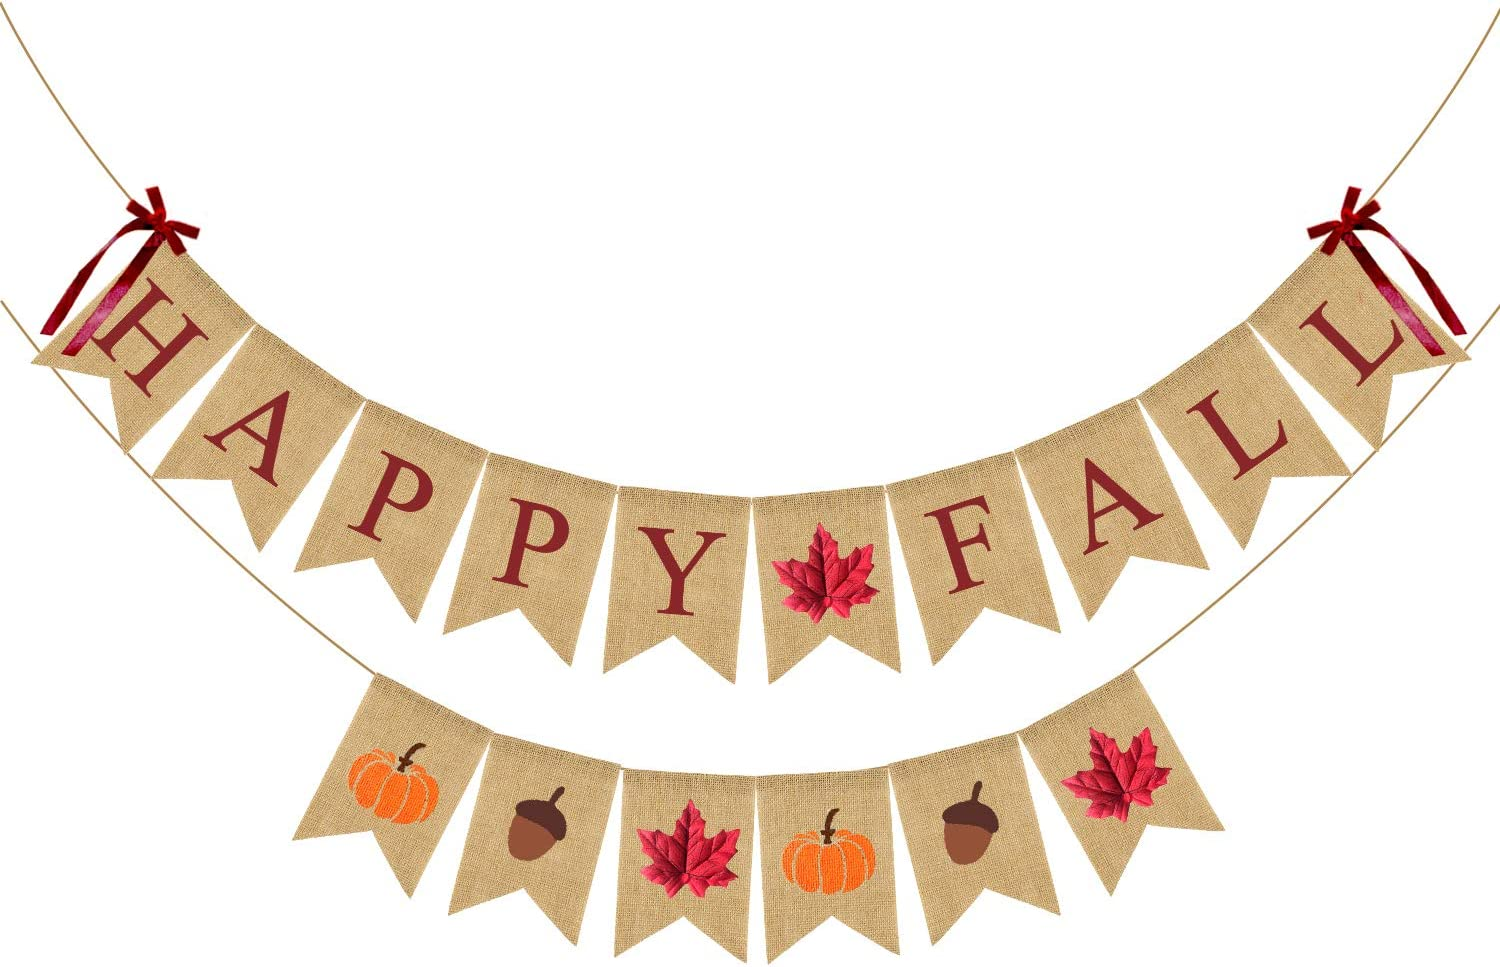 Happy Fall Banner Decorations,2 Pack Thanksgiving Fall Pumpkins Maple Leaves Acorn Burlap Banner Decor for Autumn Party Home,Farmhouse,Fireplace,Office,etc.